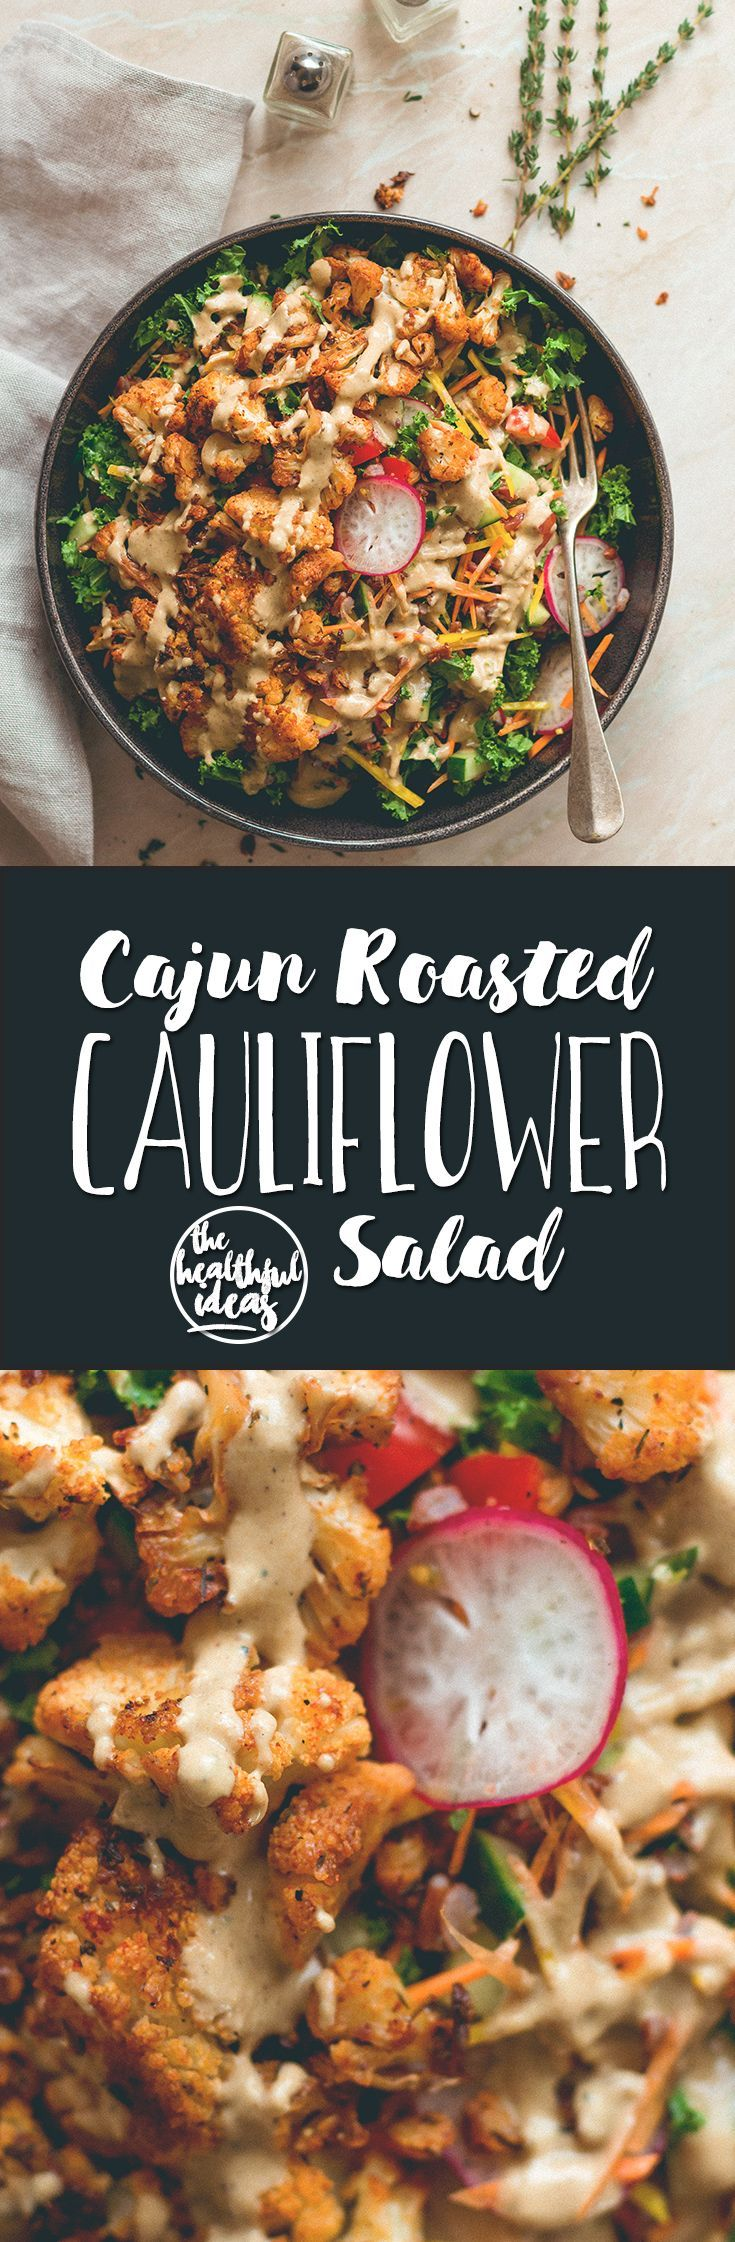 Cajun Roasted Cauliflower Salad - I love cajun seasoning on roasted fall vegetables. This salad is perfect for this time of the year. Cauliflower, mixed salad, and tahini dressing. (vegan, GF) | http://thehealthfulideas.com